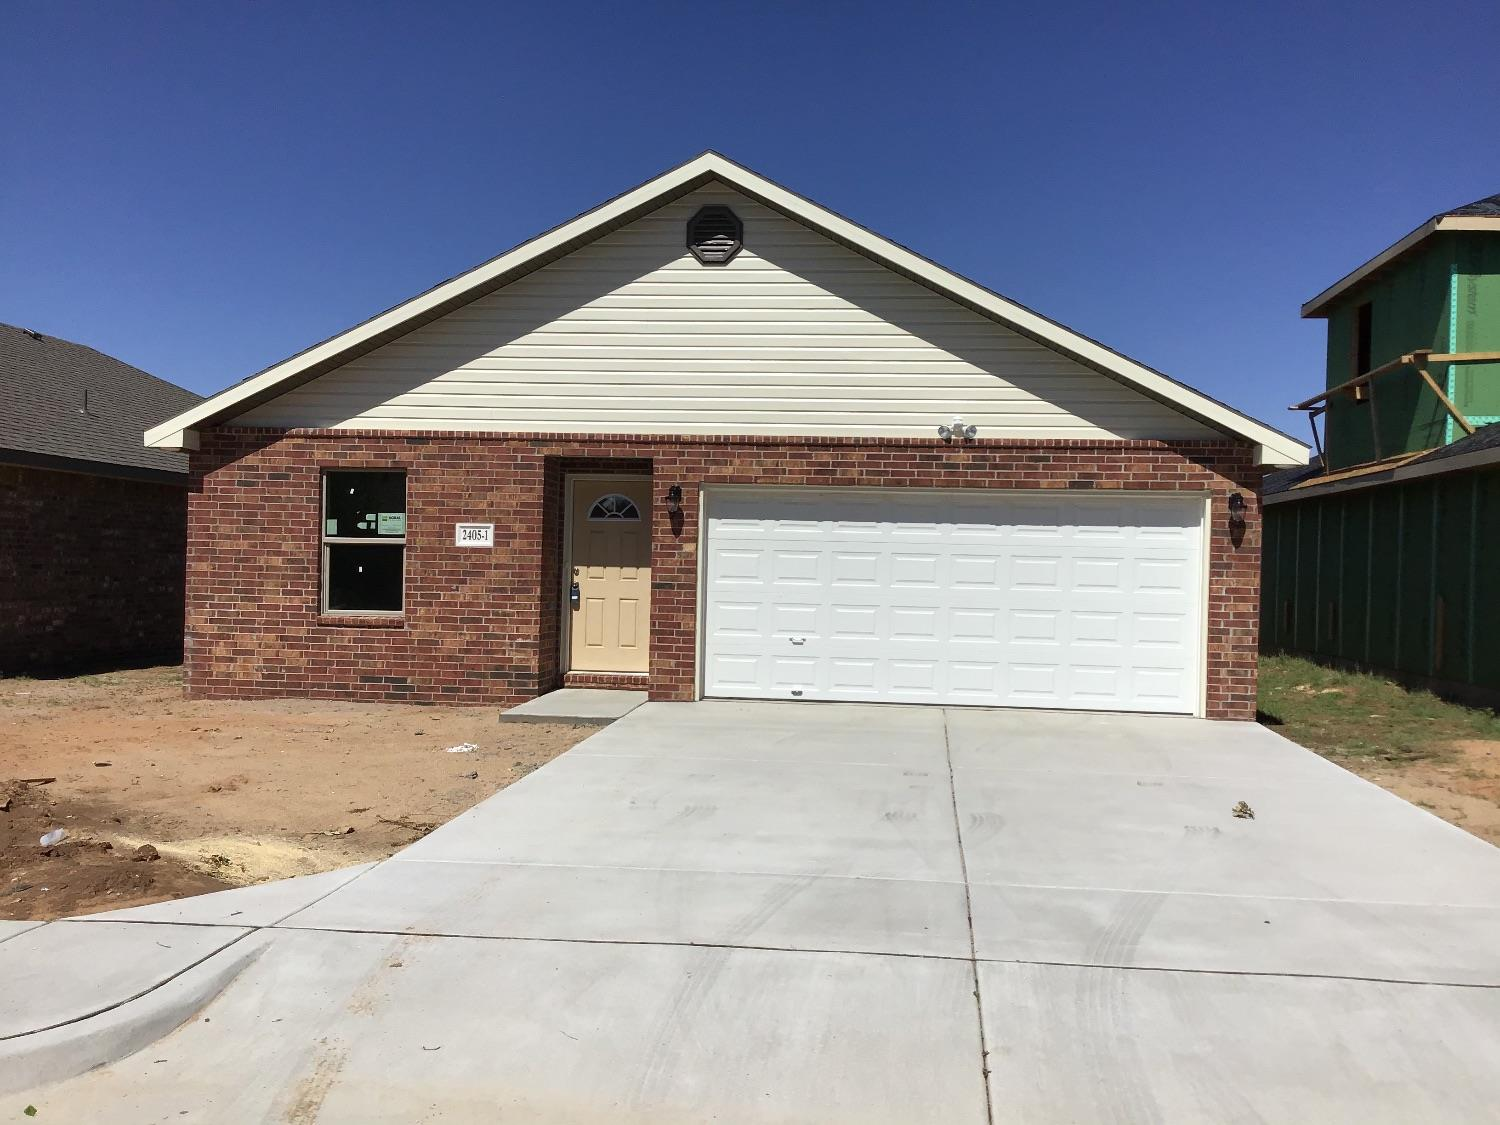 NEW Construction Estimated May 2020. 3 bedroom 2 bath, Granite counter tops, painted cabinets, and Builder also offering appliance package including stove, refrigerator, microwave, and dishwasher. Spacious master with walk in shower, hall bath will have tub shower combo. Great opportunity to own a brand new home.